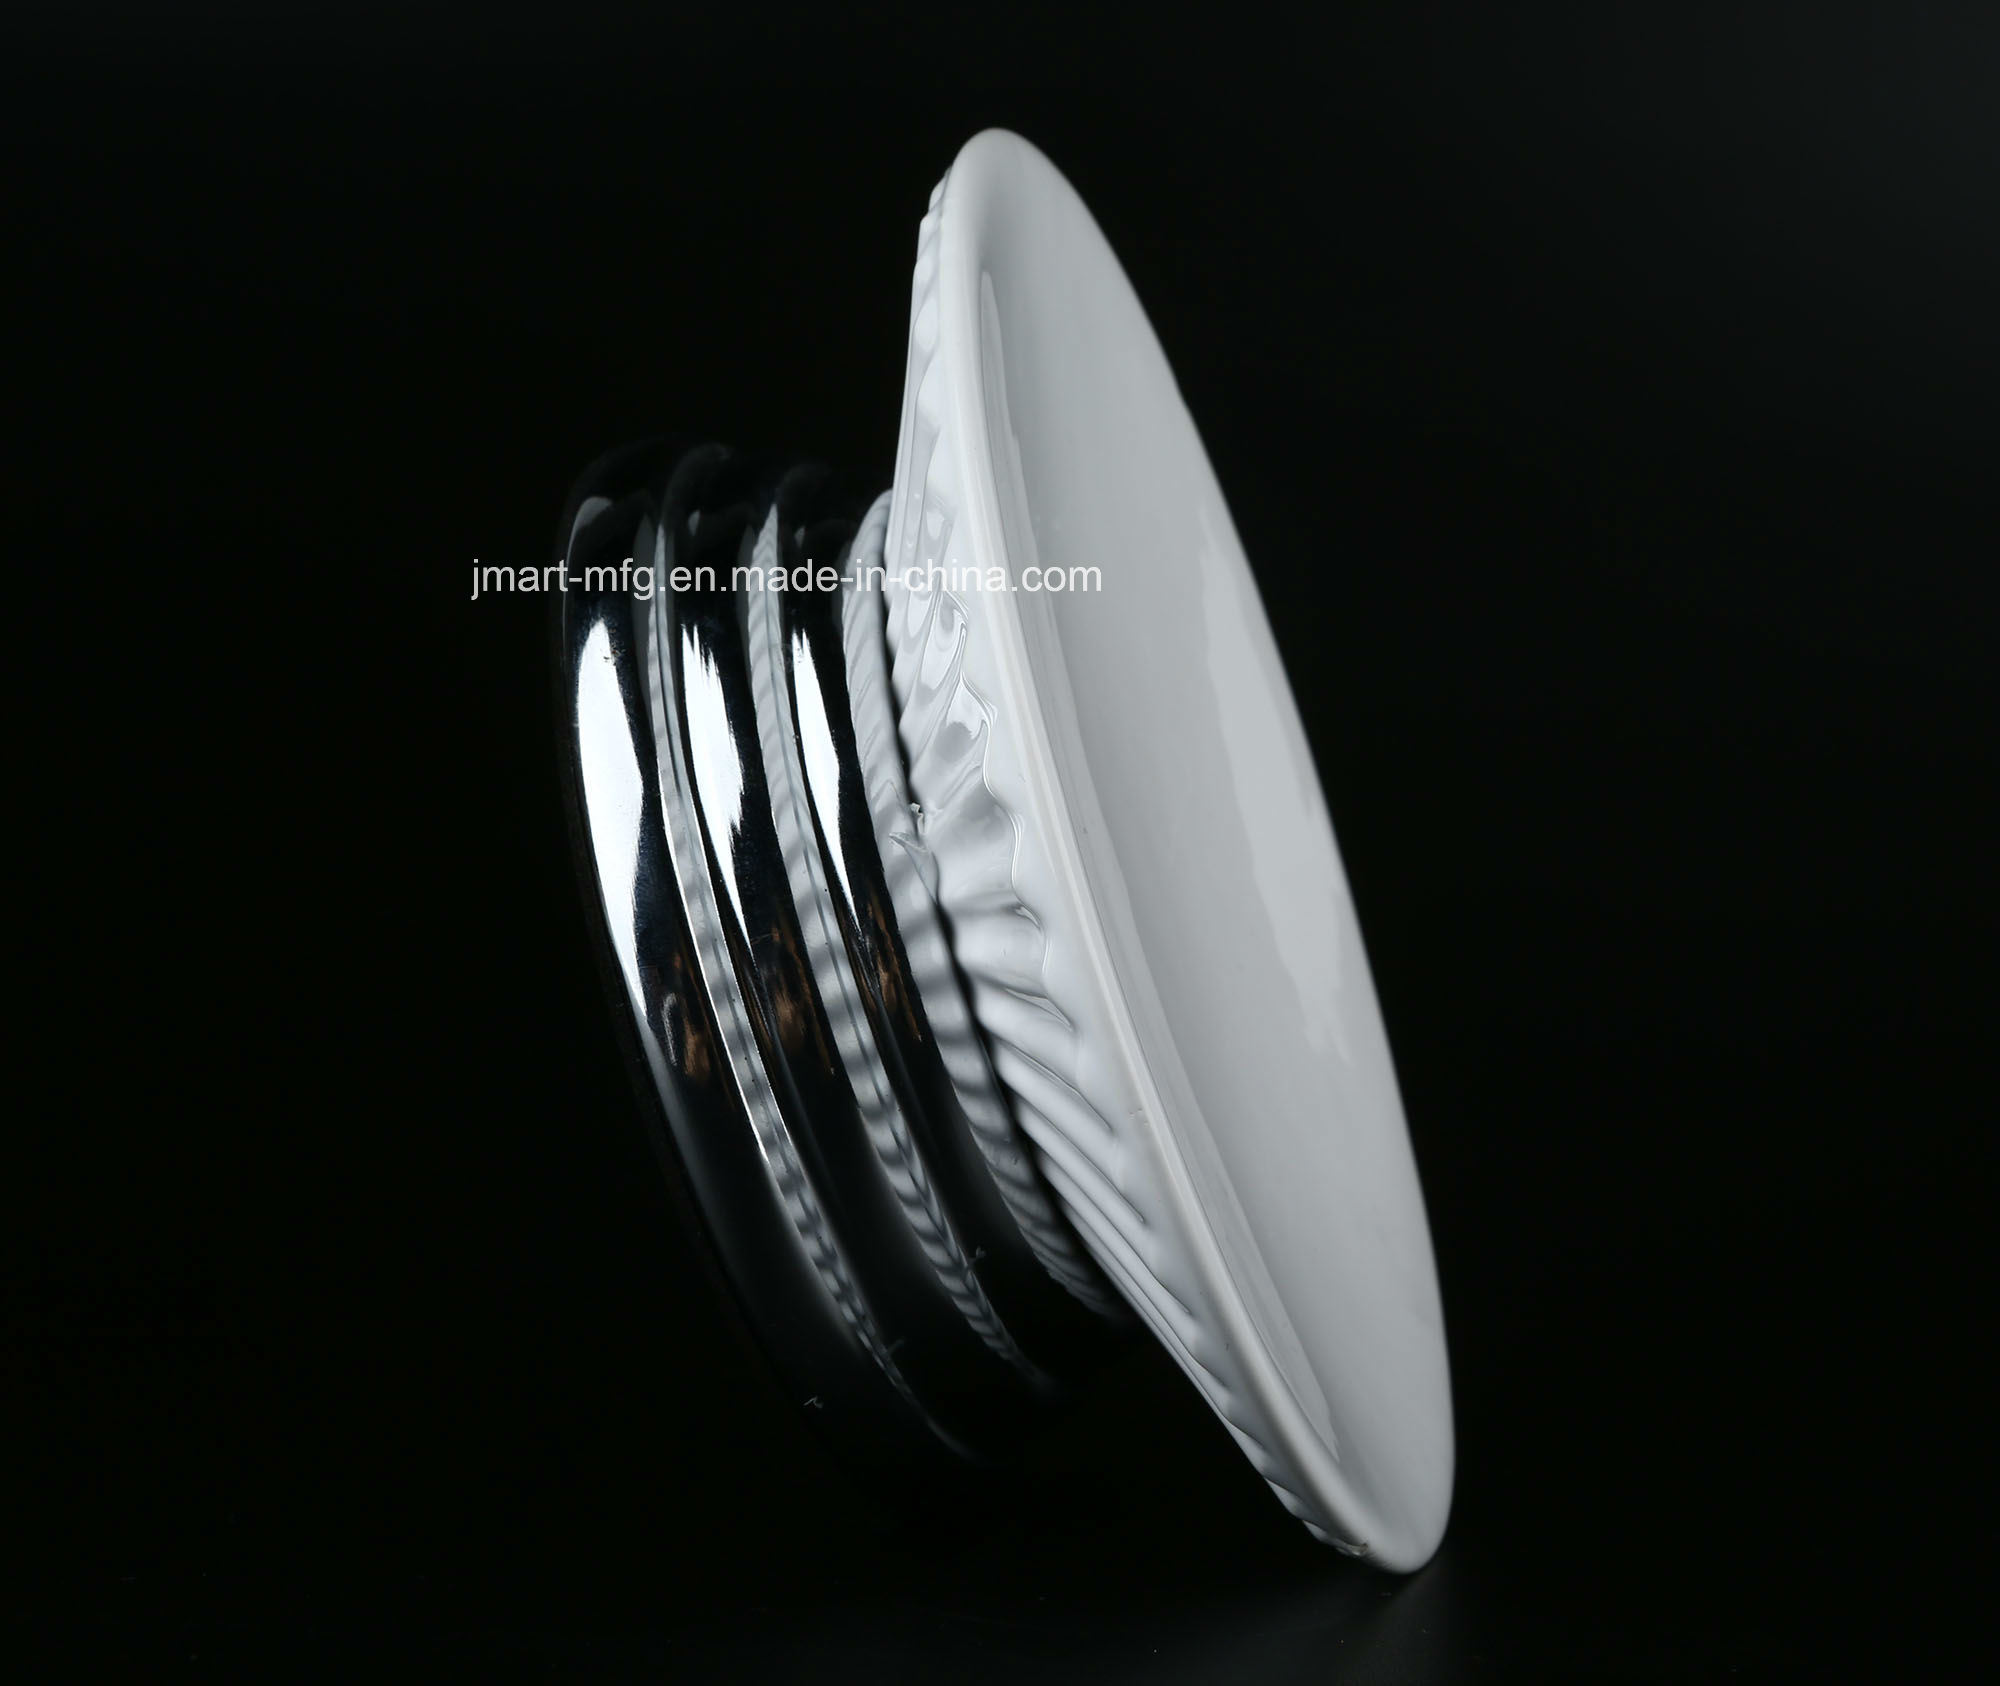 Ribbed 3D Metal Ceramic Bathroom Accessory